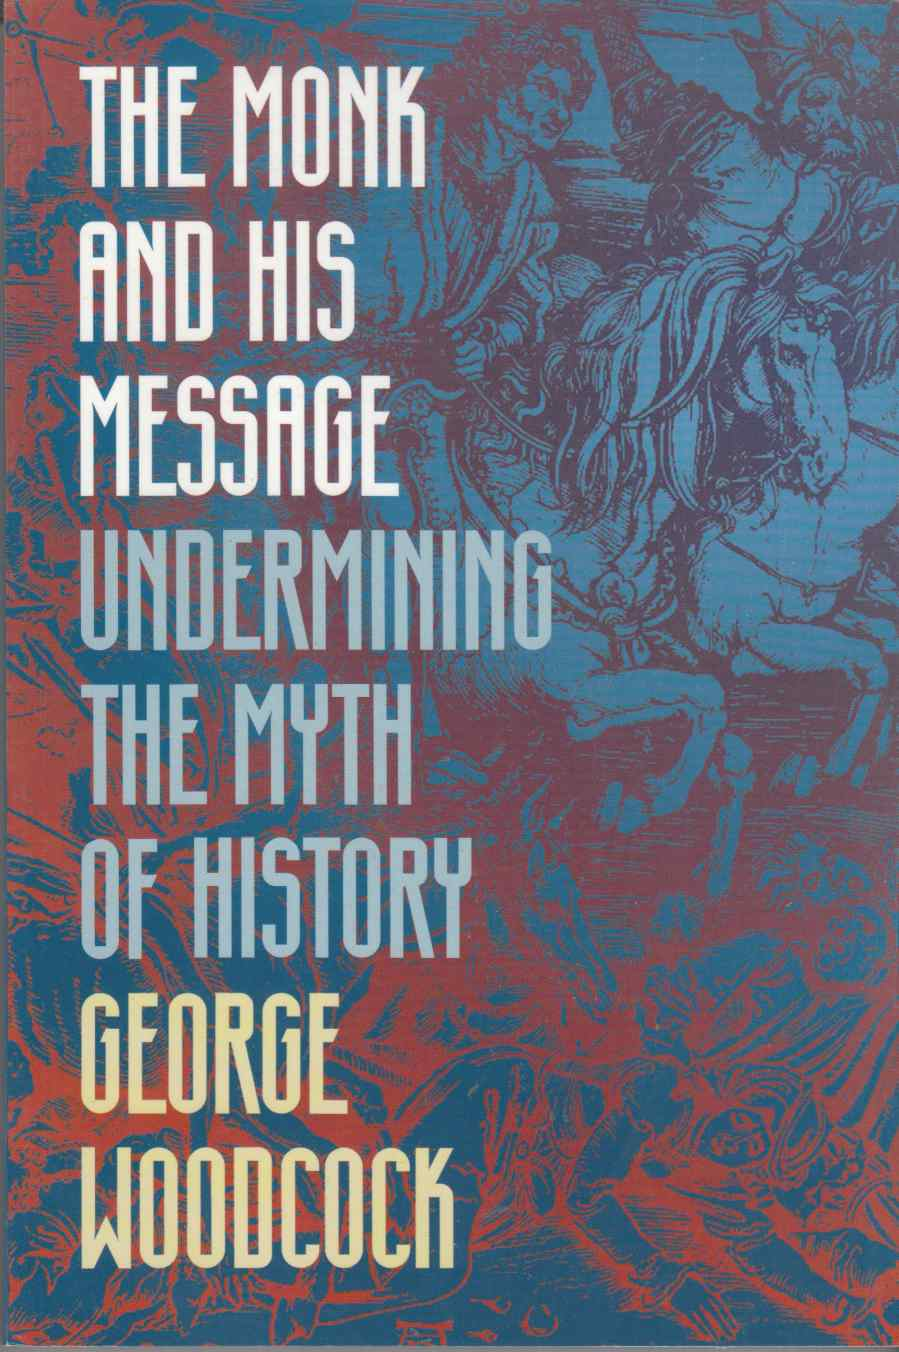 Image for The Monk and His Message Undermining the Myth of History